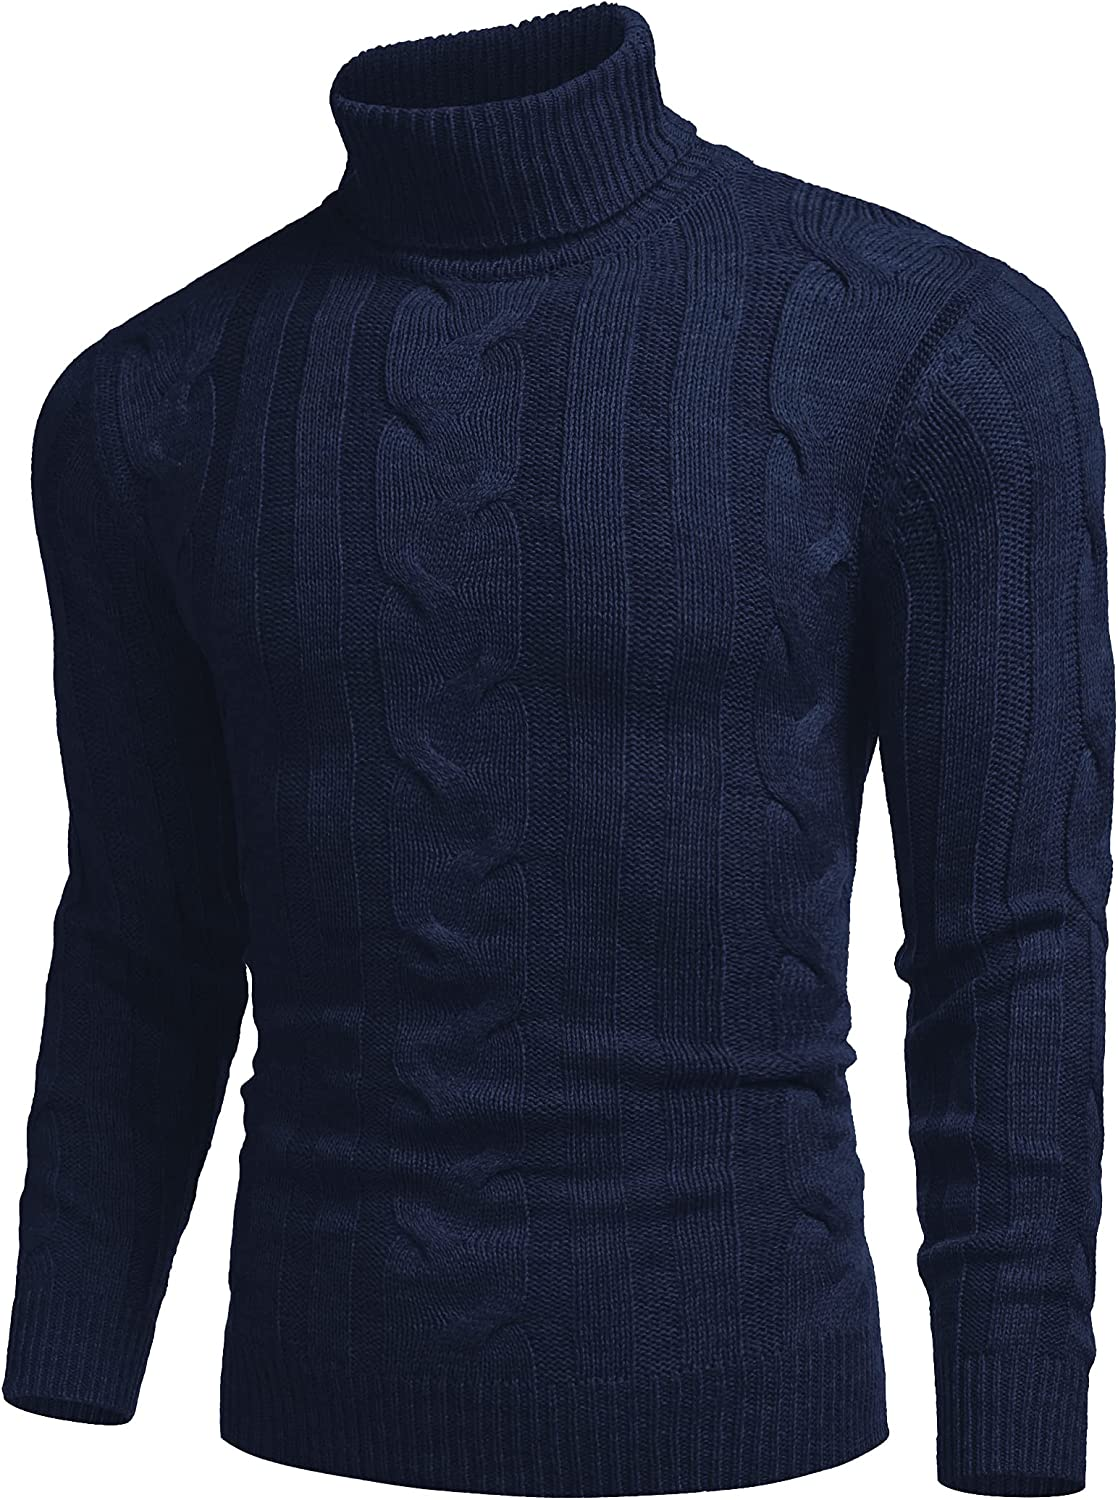 COOFANDY Men's Ribbed Turtleneck Slim Fit Casual Cable Knitted Pullover Sweaters